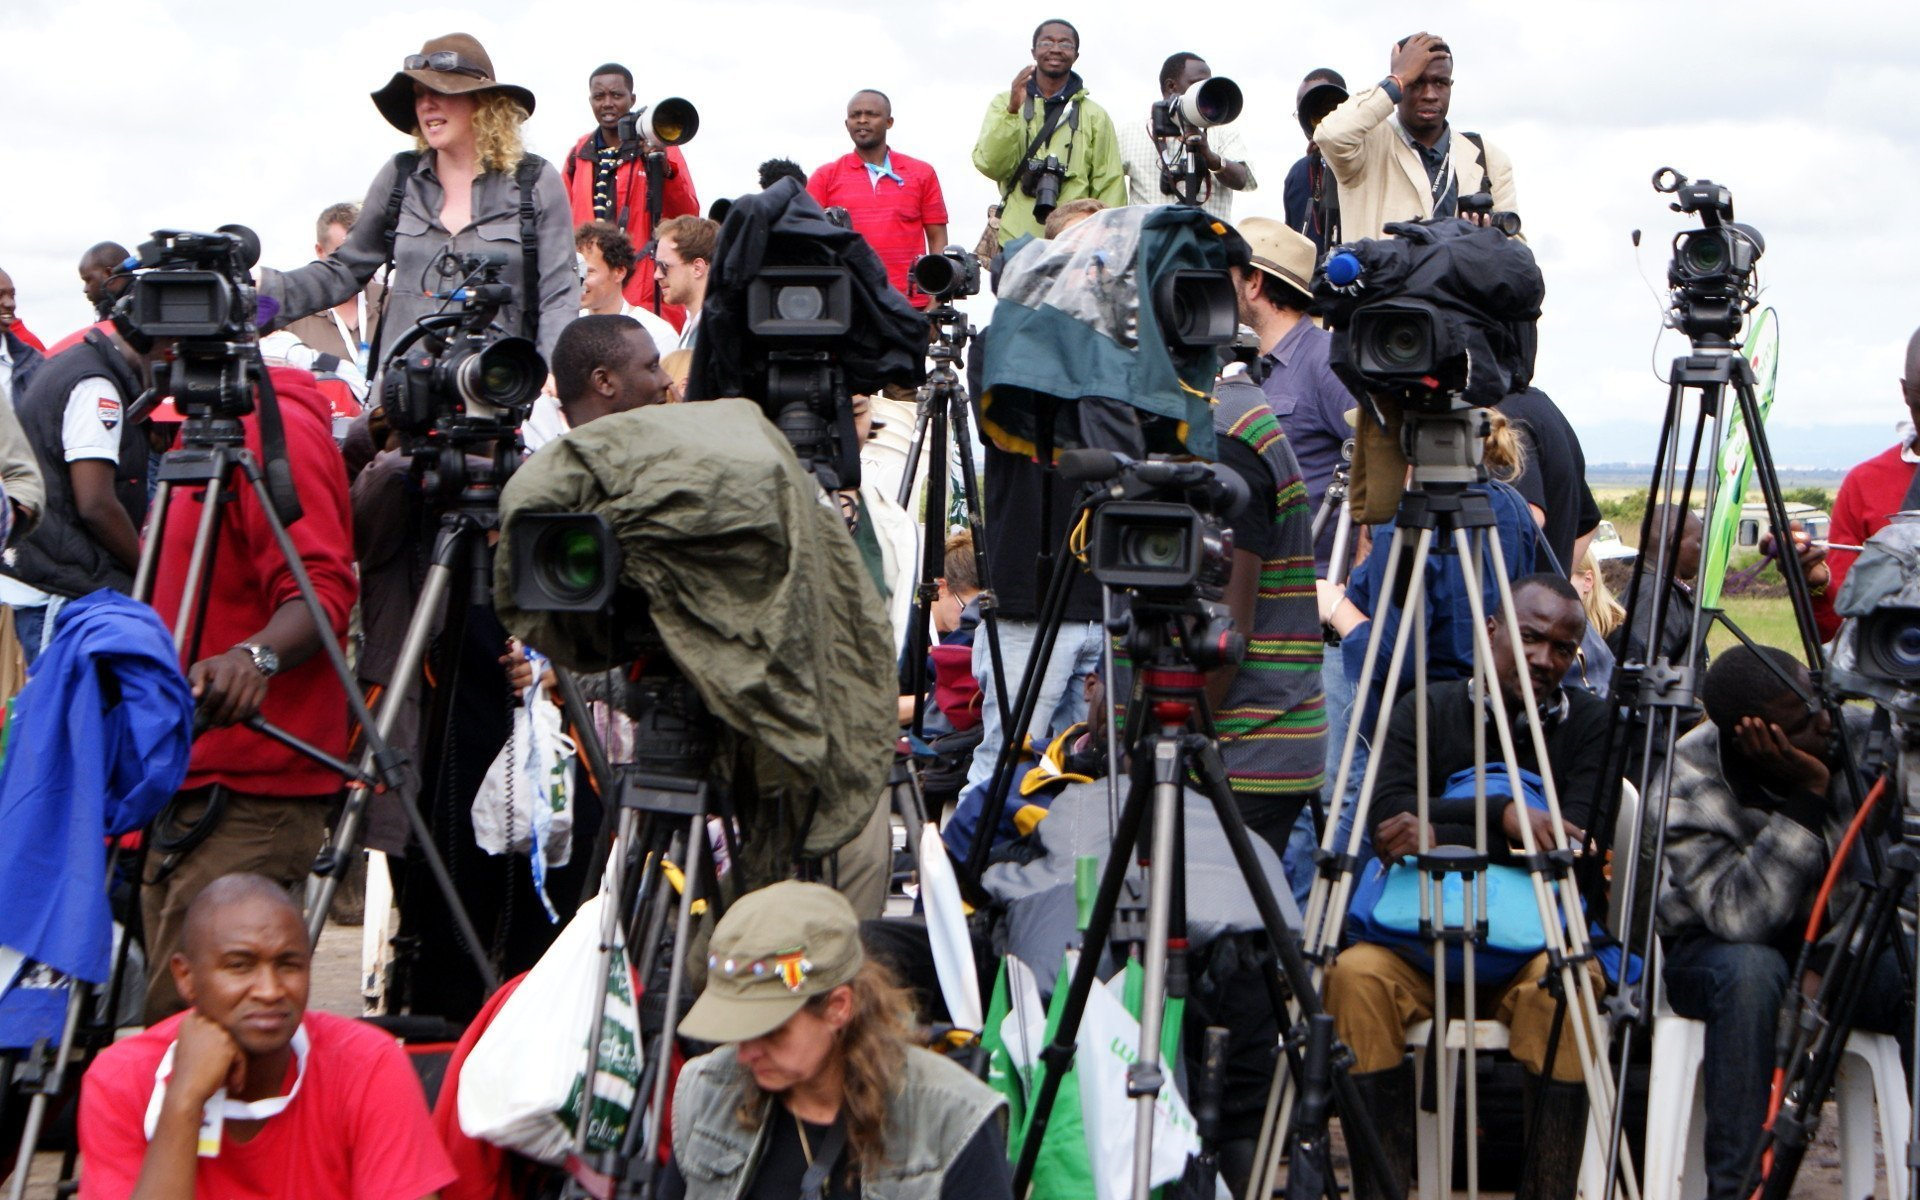 Local and International media was there to cover the historic event.